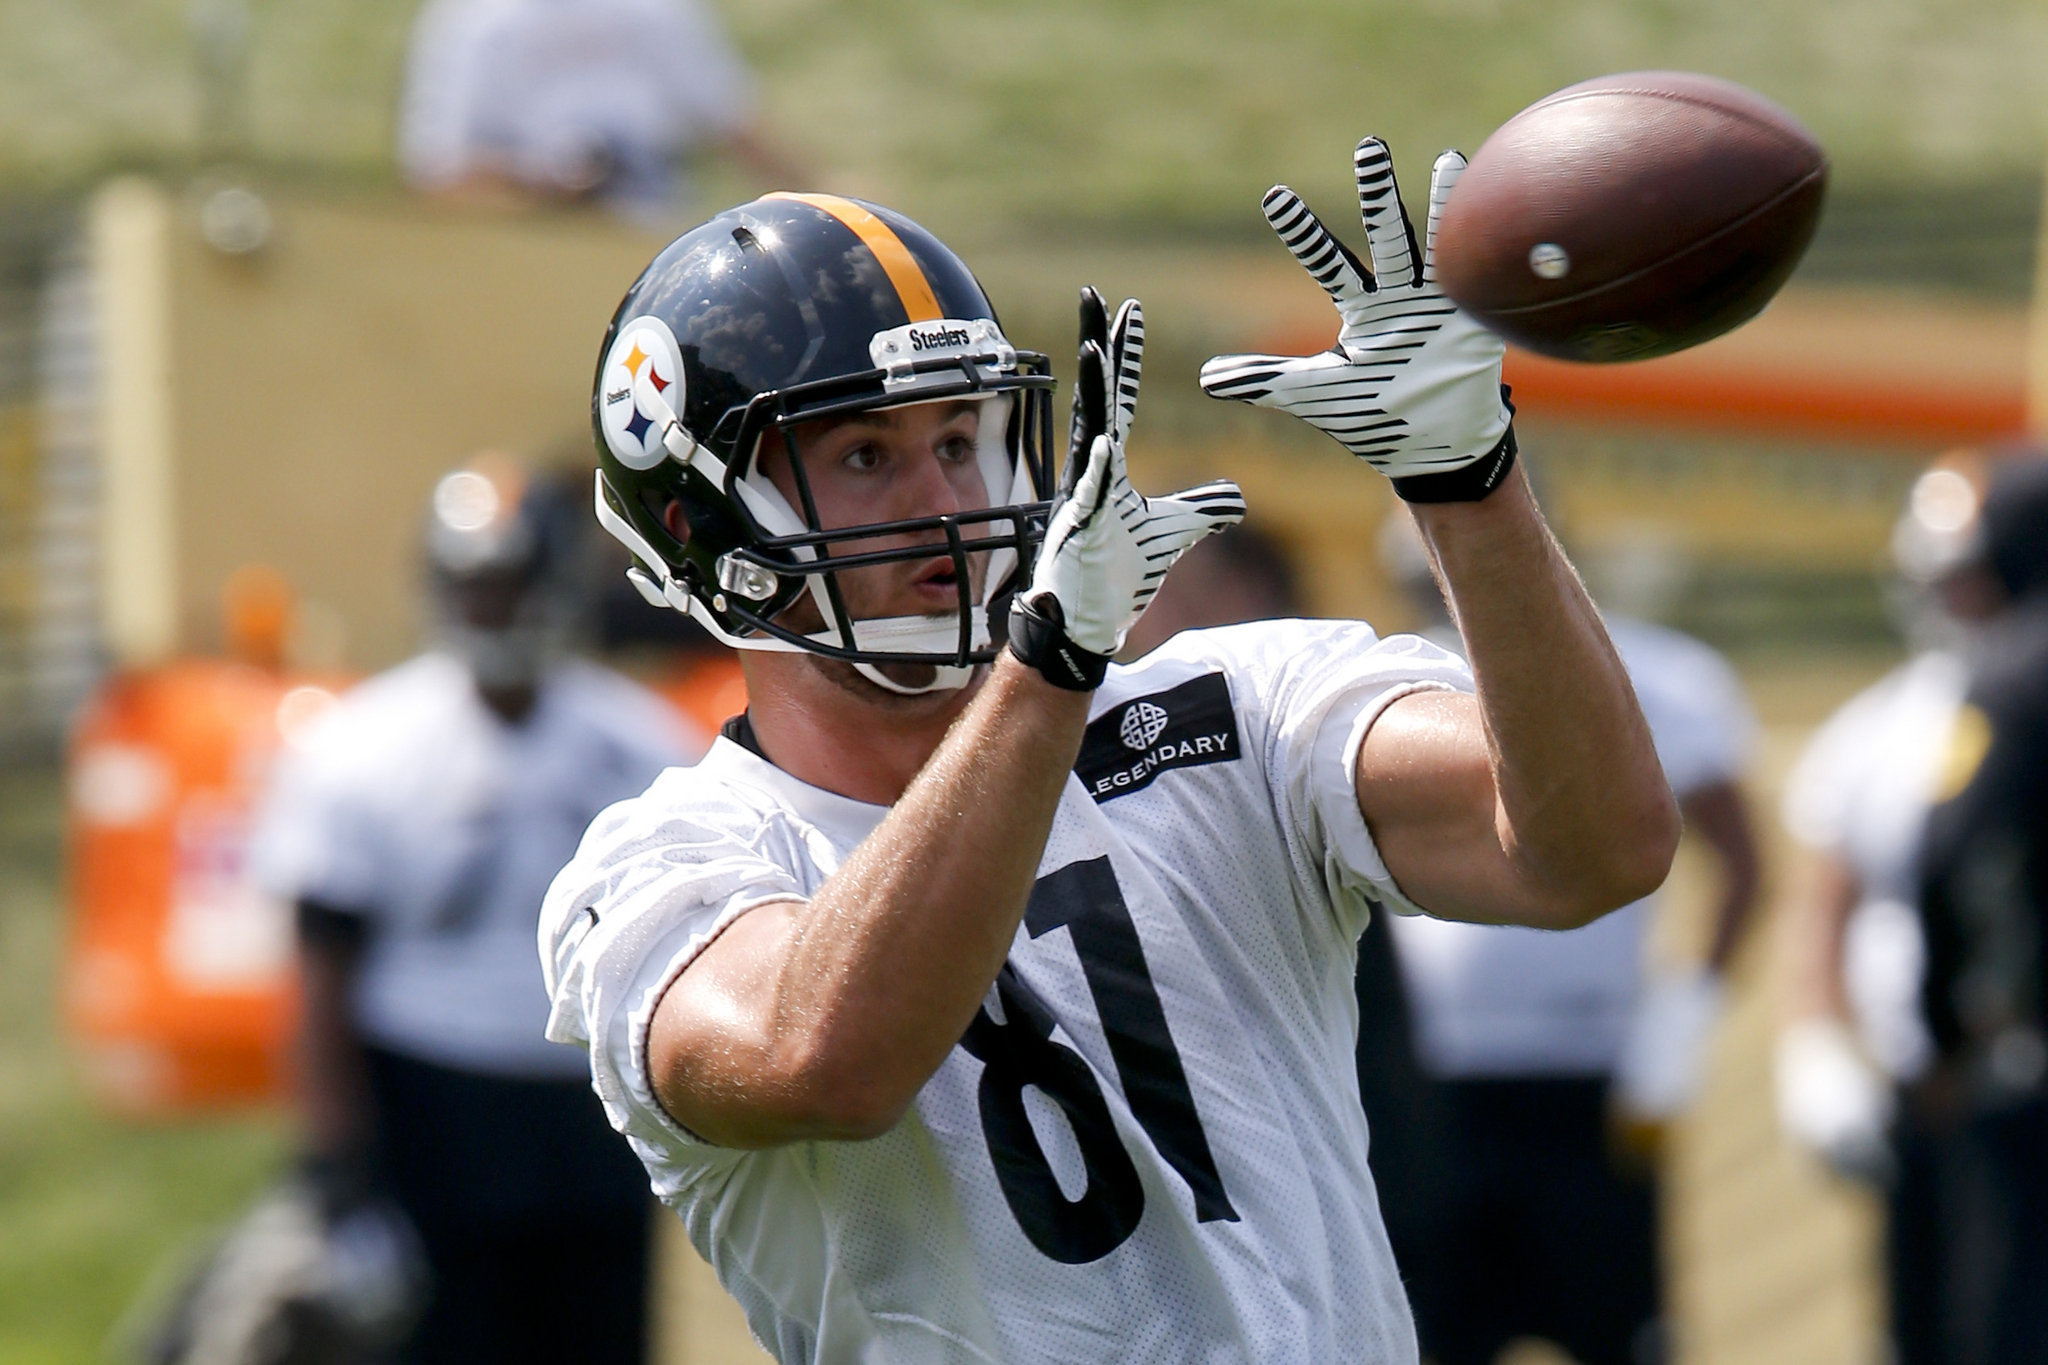 jesse-james-pittsburgh-steelers-training-camp-c01942937fee3bdd